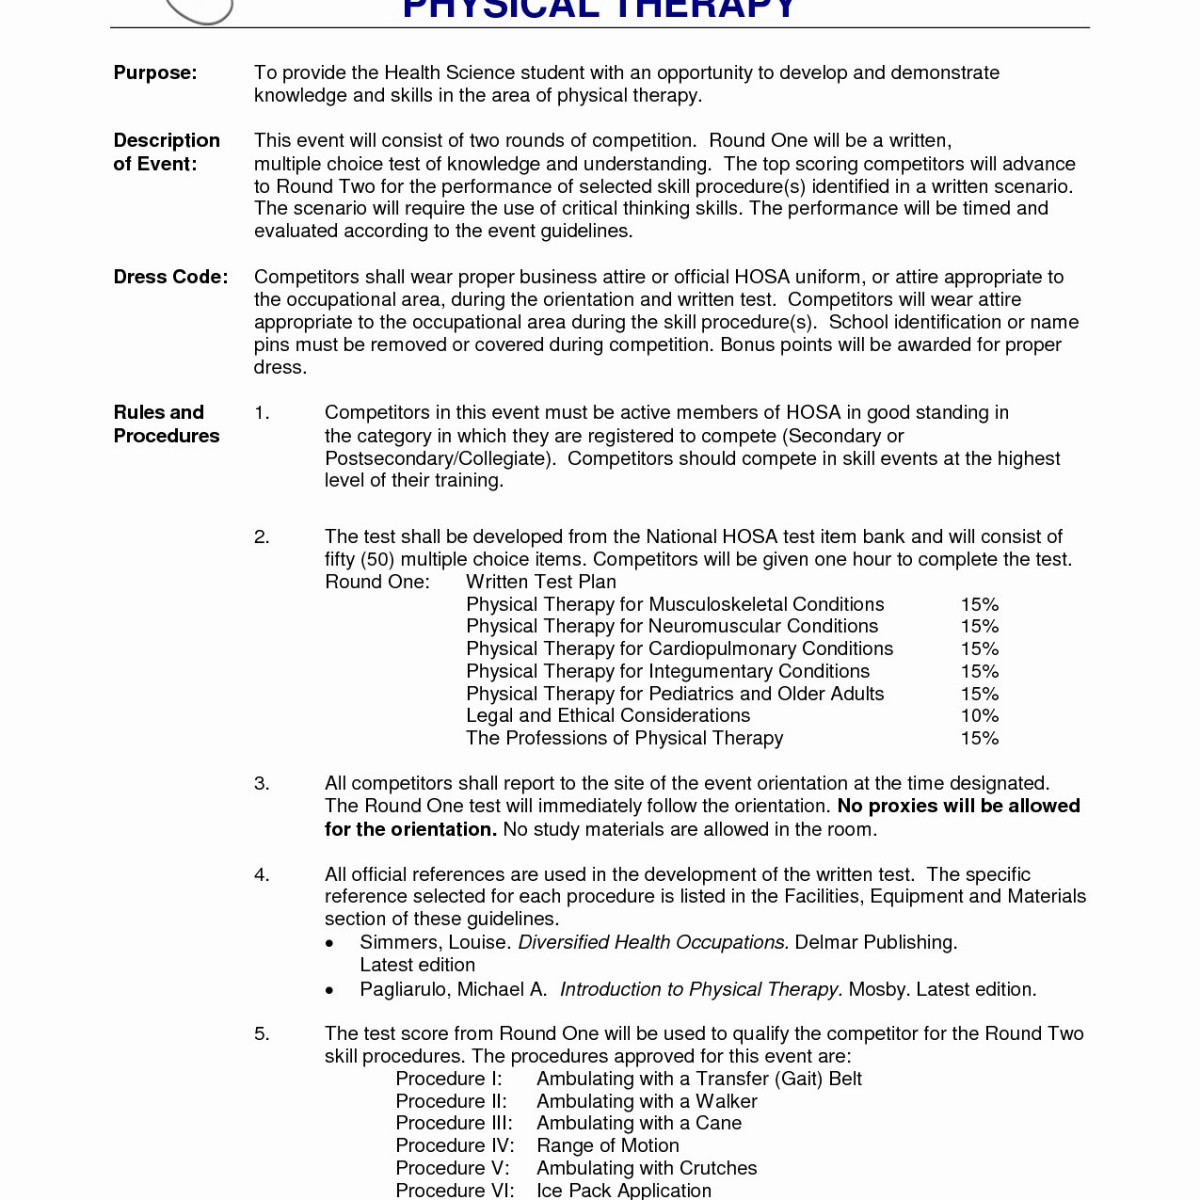 pta resume template Collection-Resume Examples for Physical therapist at Resume Sample Ideas from Sample Physical Therapy Resume source cheapjordanretros 6-k